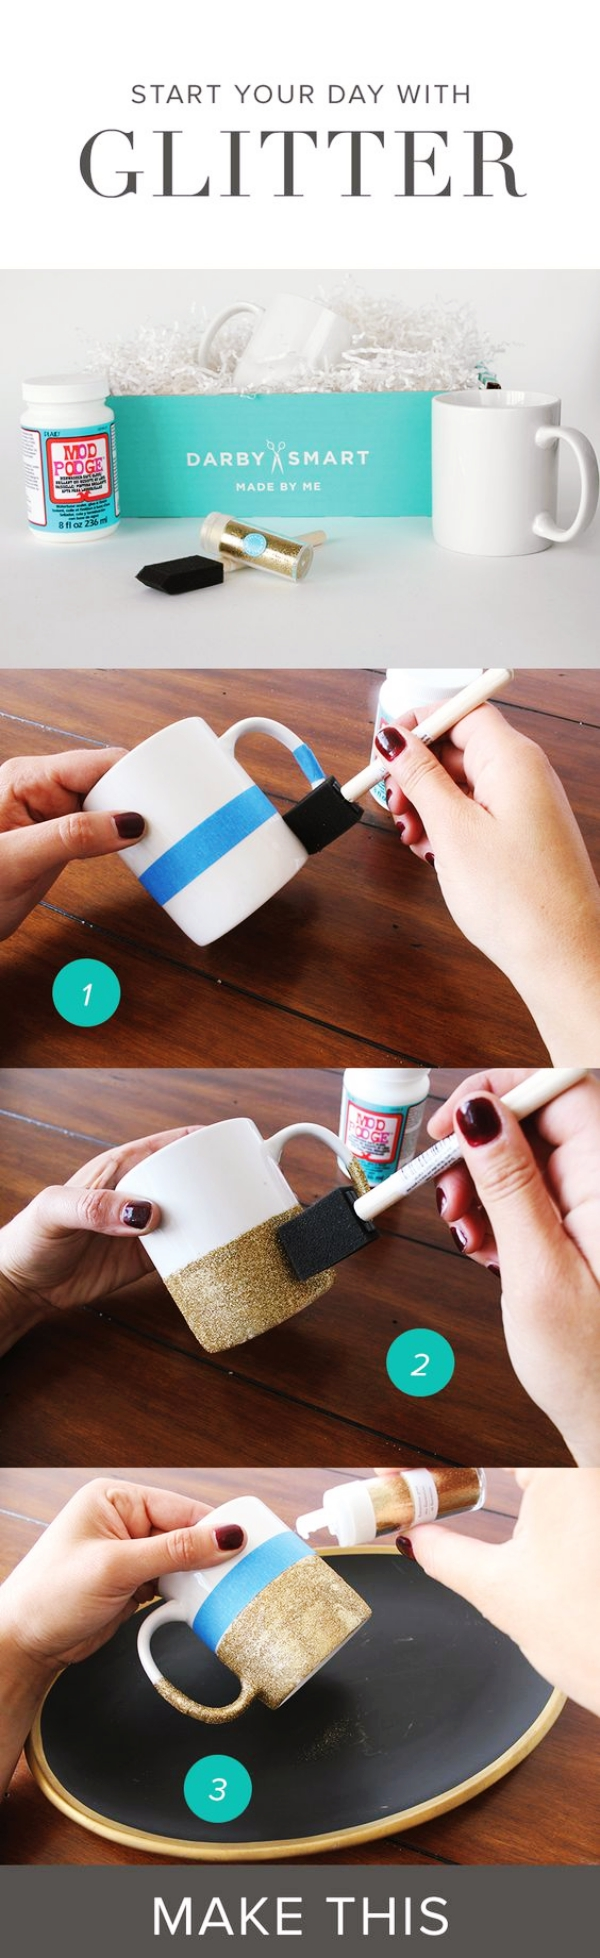 Easy-Peasy-DIY-Christmas-Gift-Ideas-for-Him